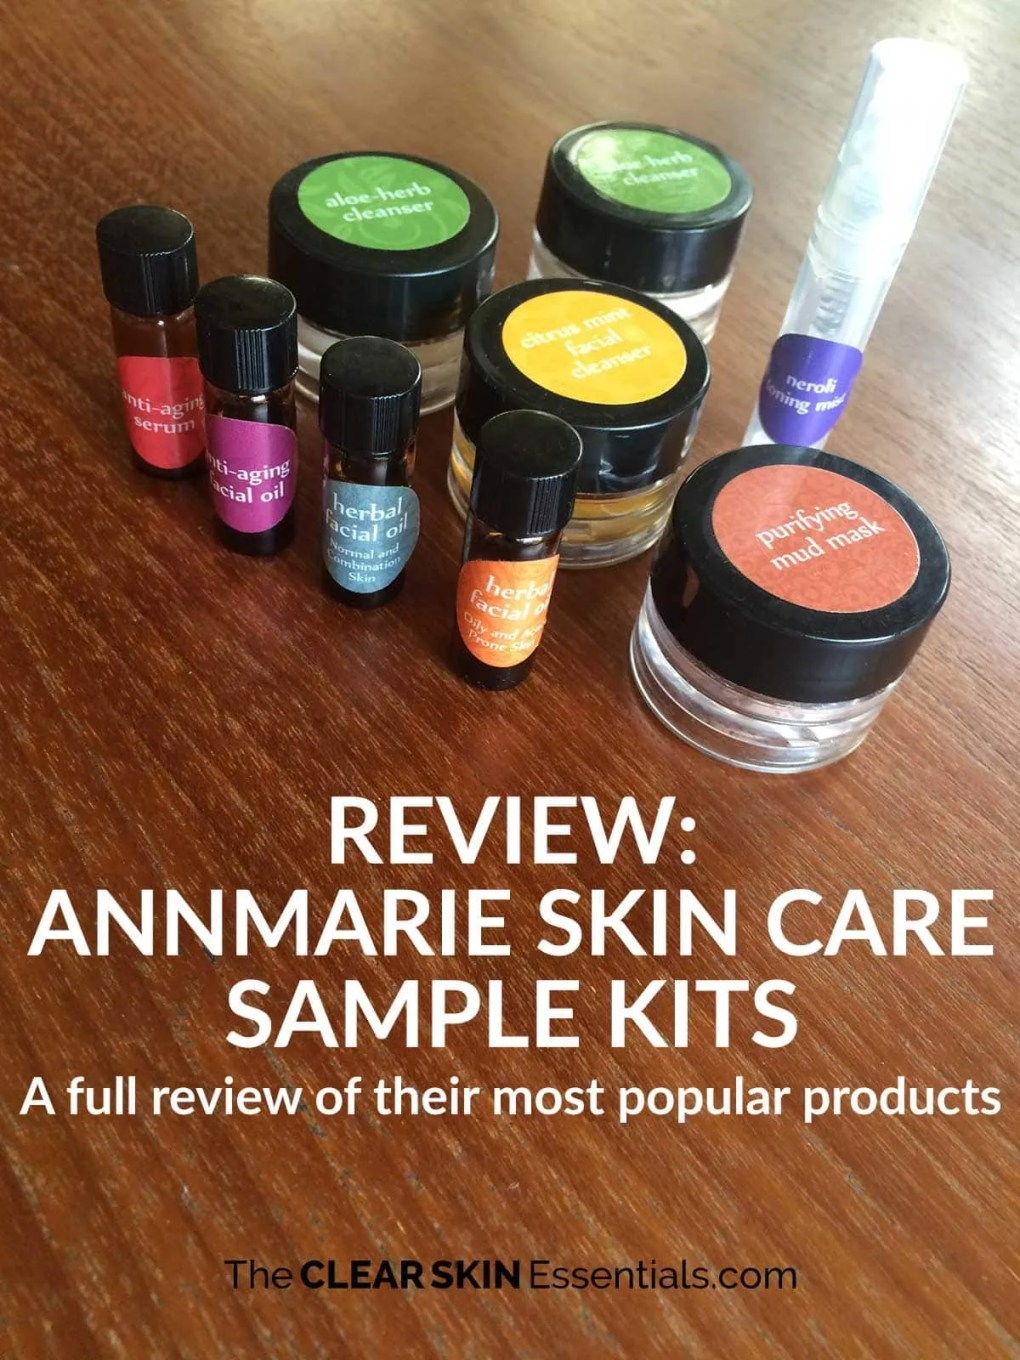 Annmarie Skin Care makes beautiful, high quality natural skin care products. They offer 3 sample kits for combination, oily, and dry skin. Click through to read the full review (my personal favourite is the Neroli Toning Mist - heavenly!) | www.TheClearSkinEssentials.com